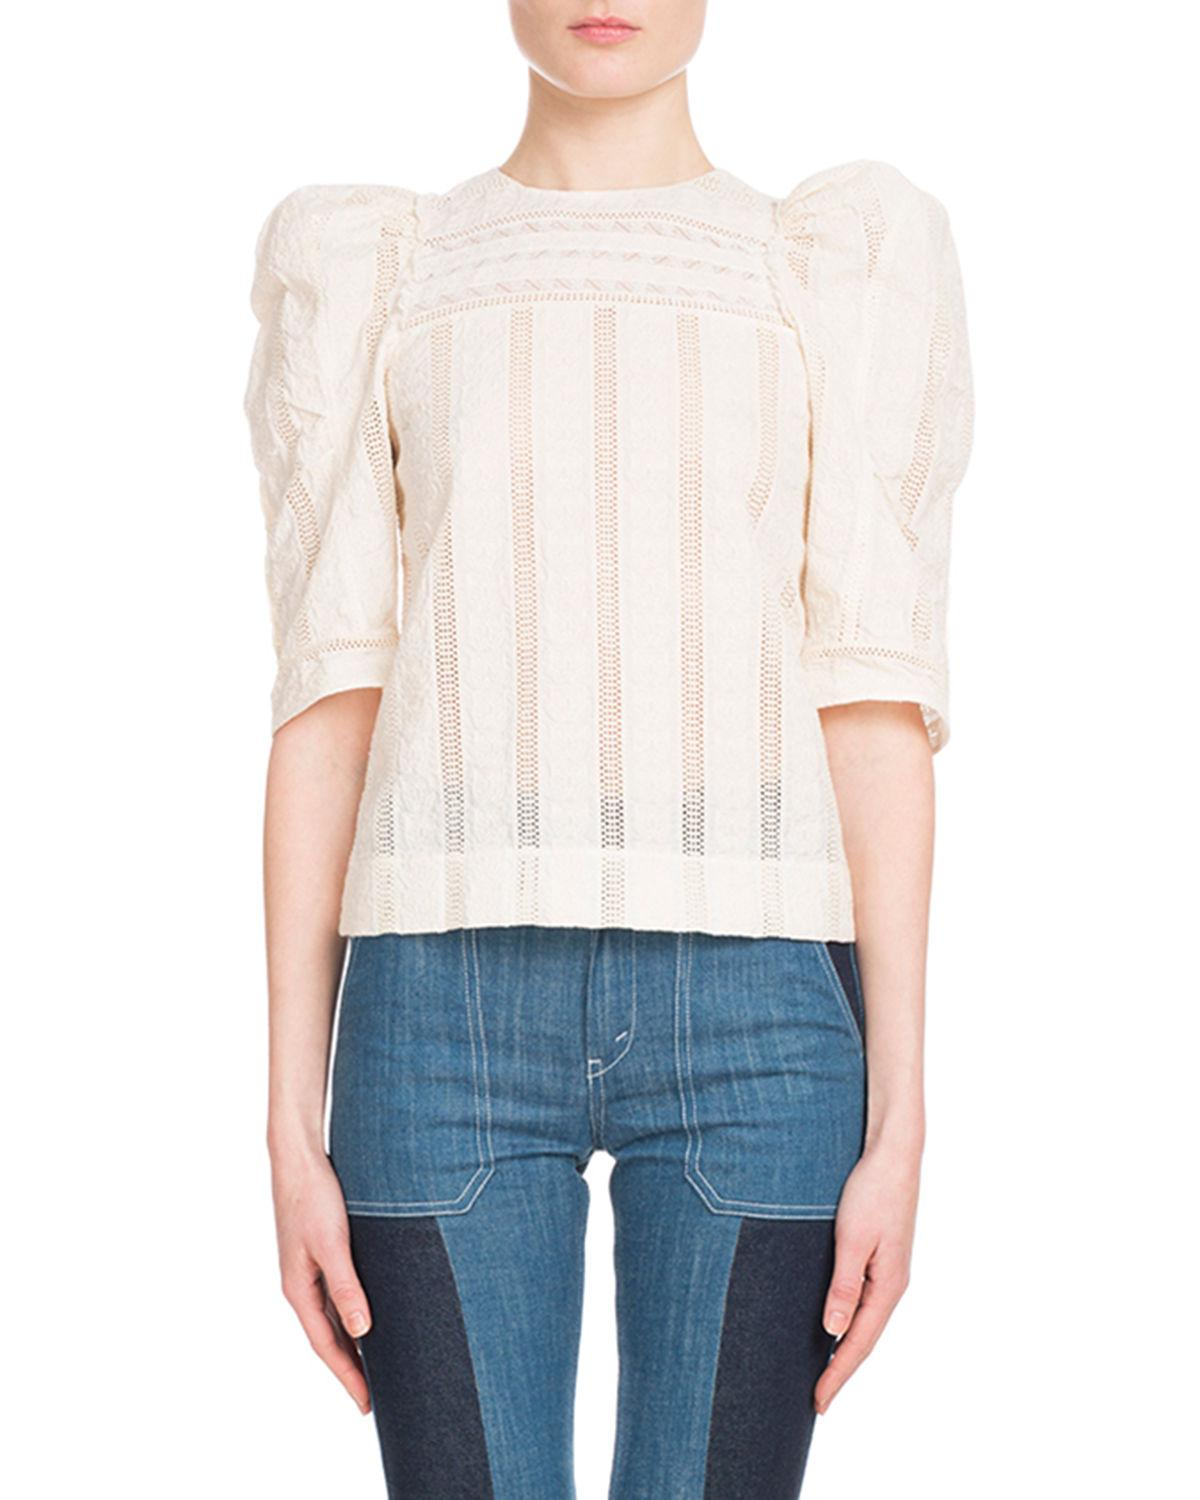 996b32bd9e8bdc ChloÉ Puff-Sleeve Embroidered Eyelet Cotton Top In White